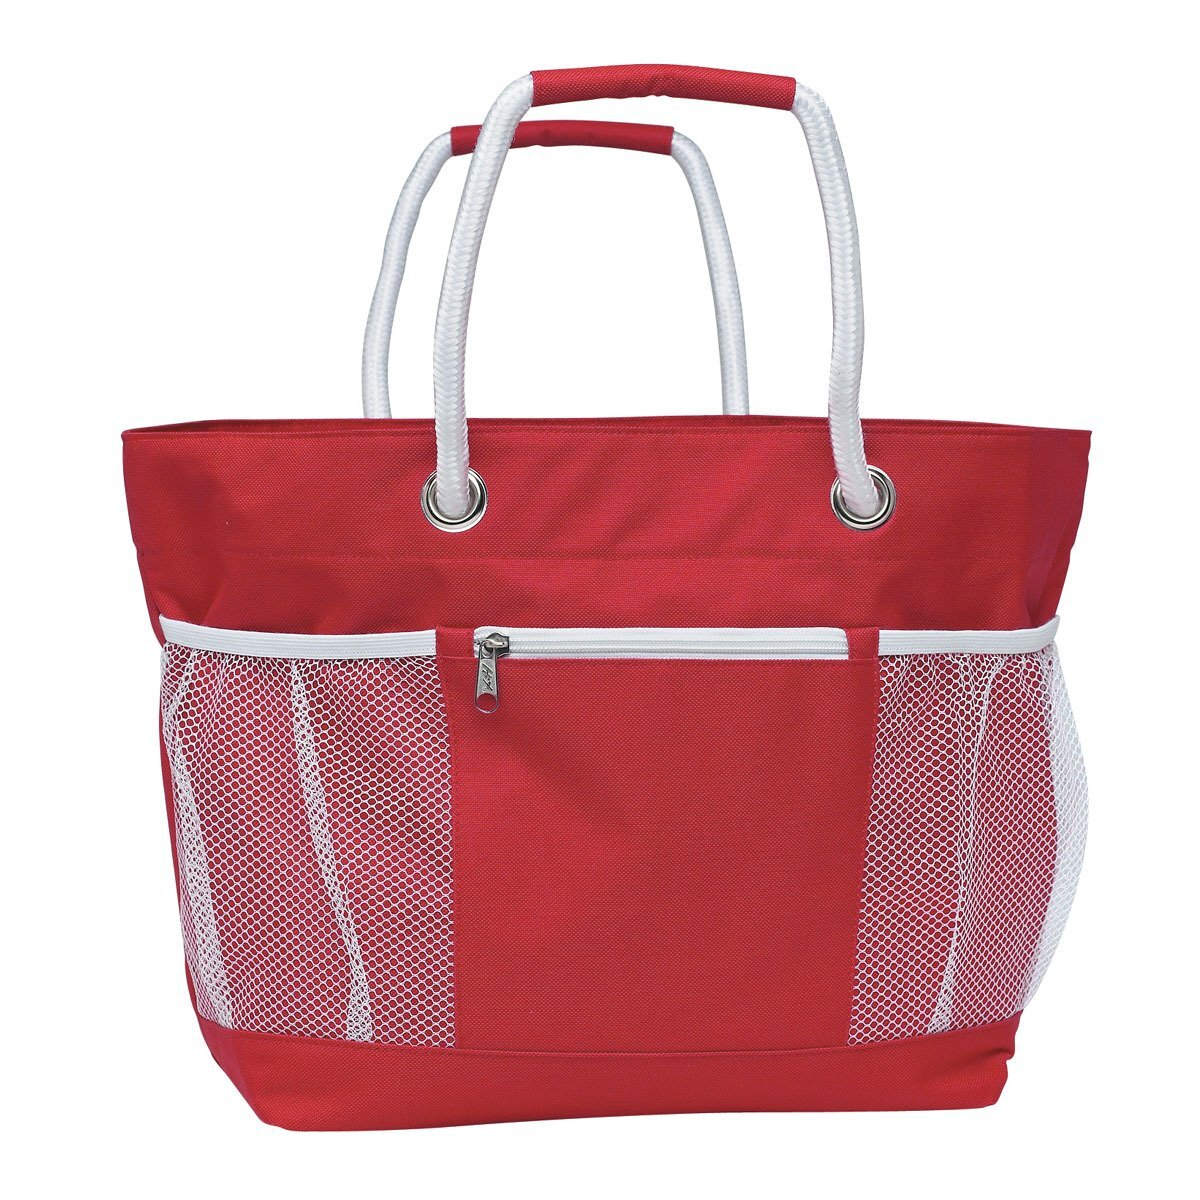 Rope-A-Tote Nylon Bag